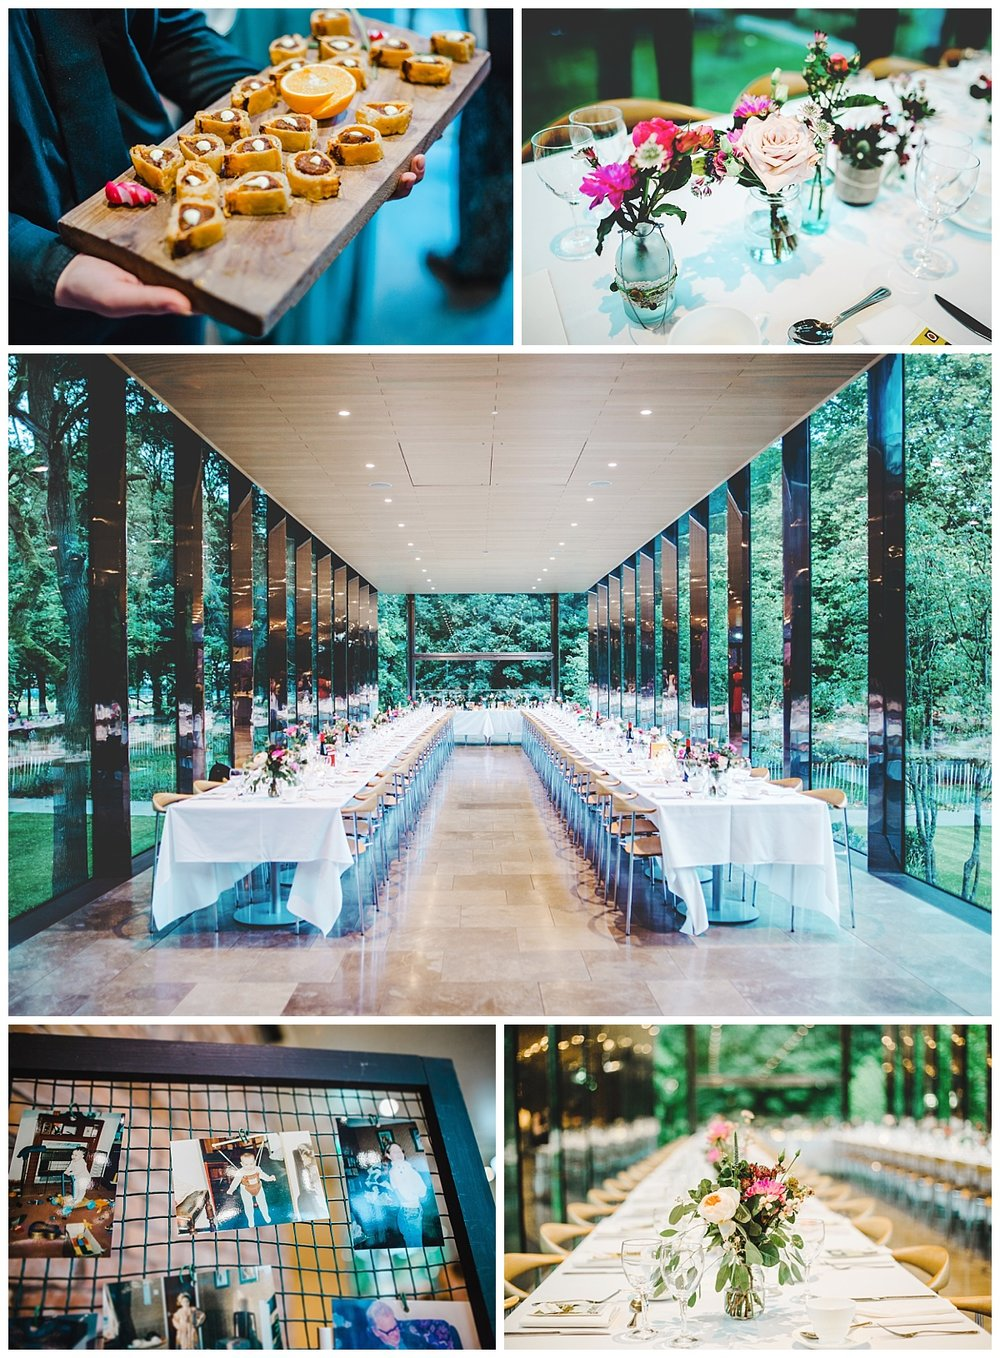 Whitworth Art Gallery for the wedding reception- Wedding photographer at Whitworth Art Gallery